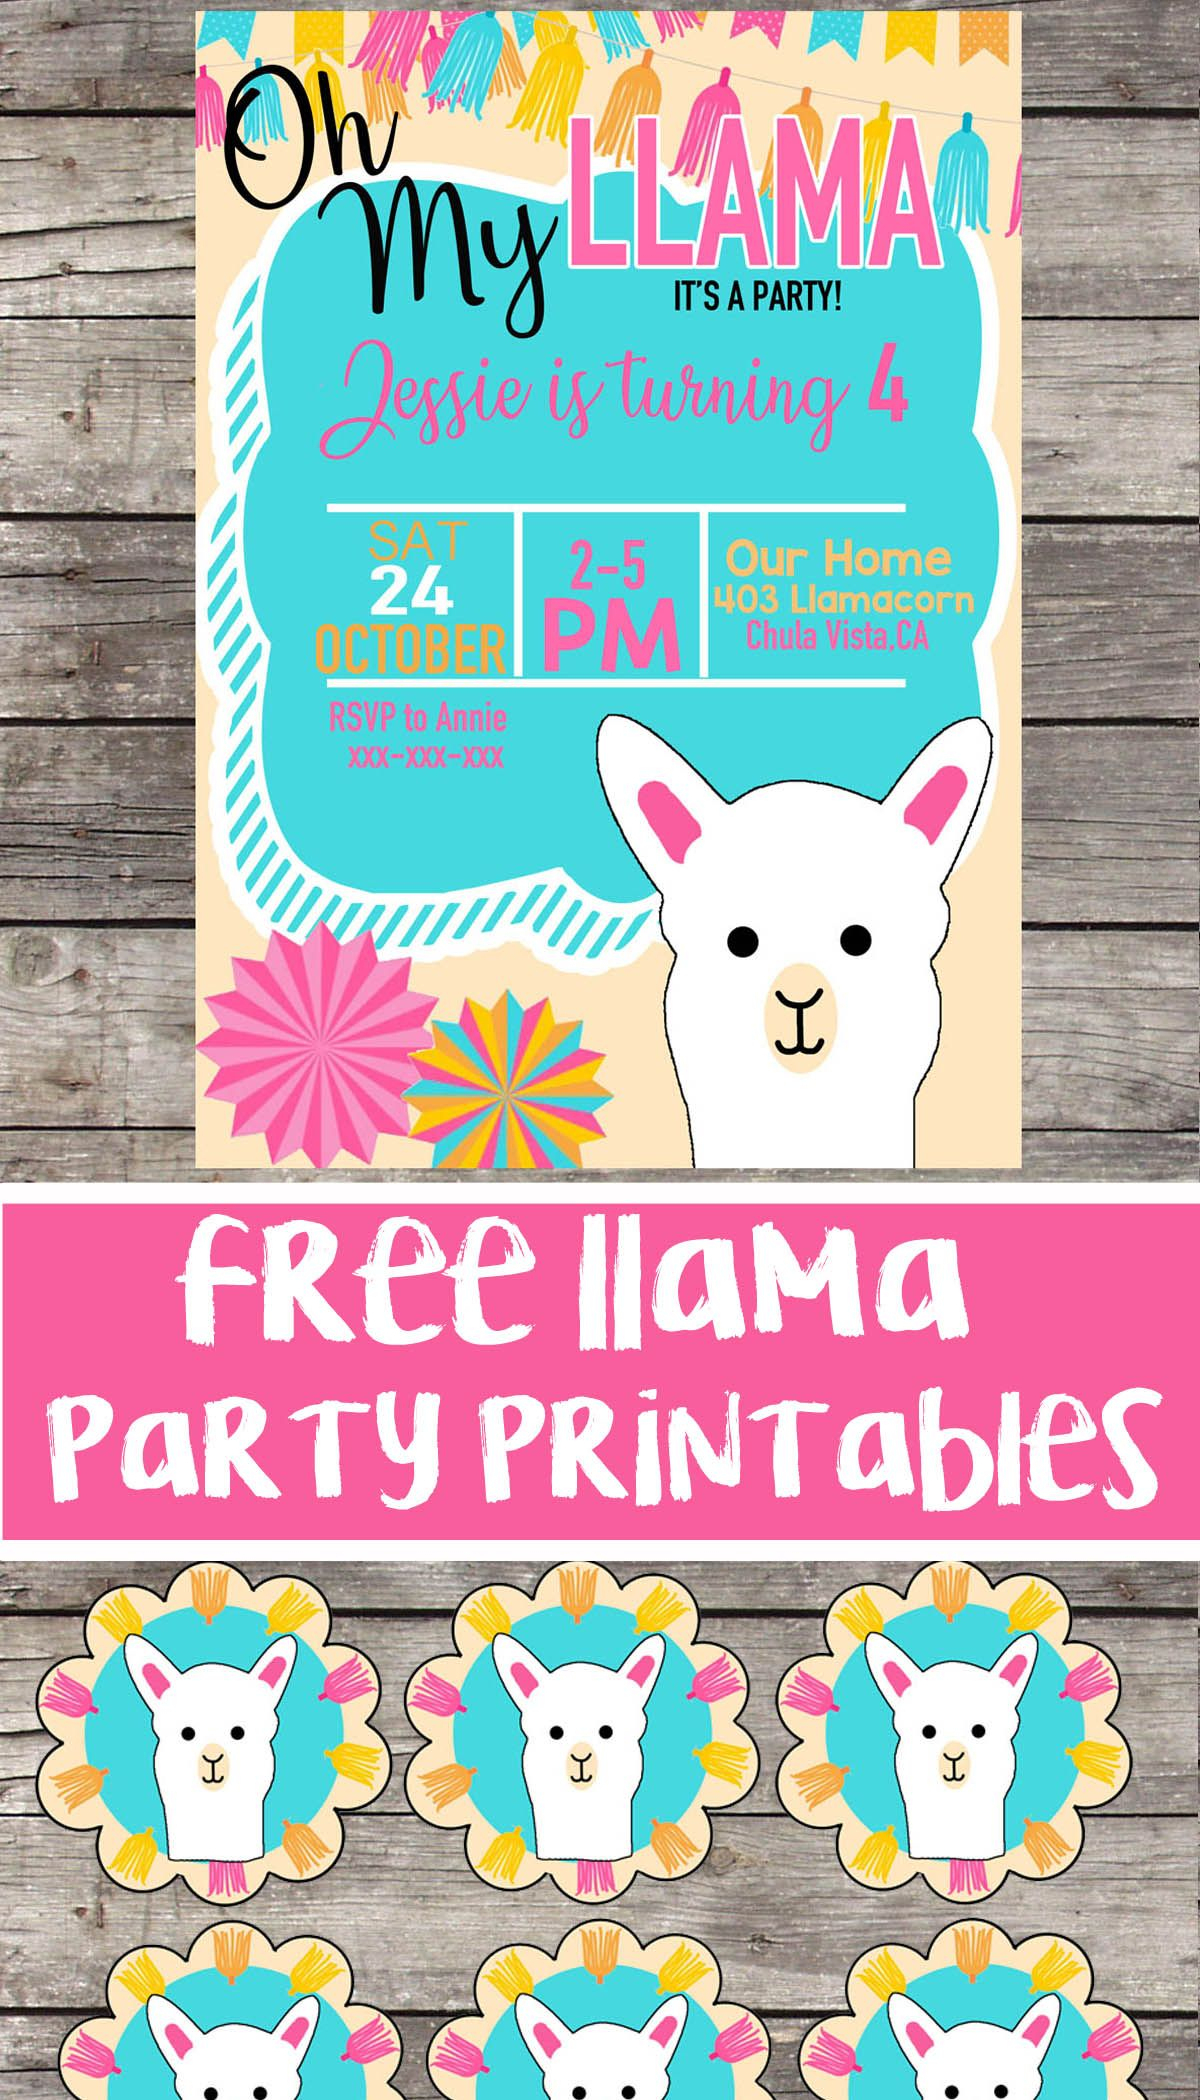 Free Llama Birthday Party Printable Files | Invitation | Cupcake - Free Stork Party Invitations Printable